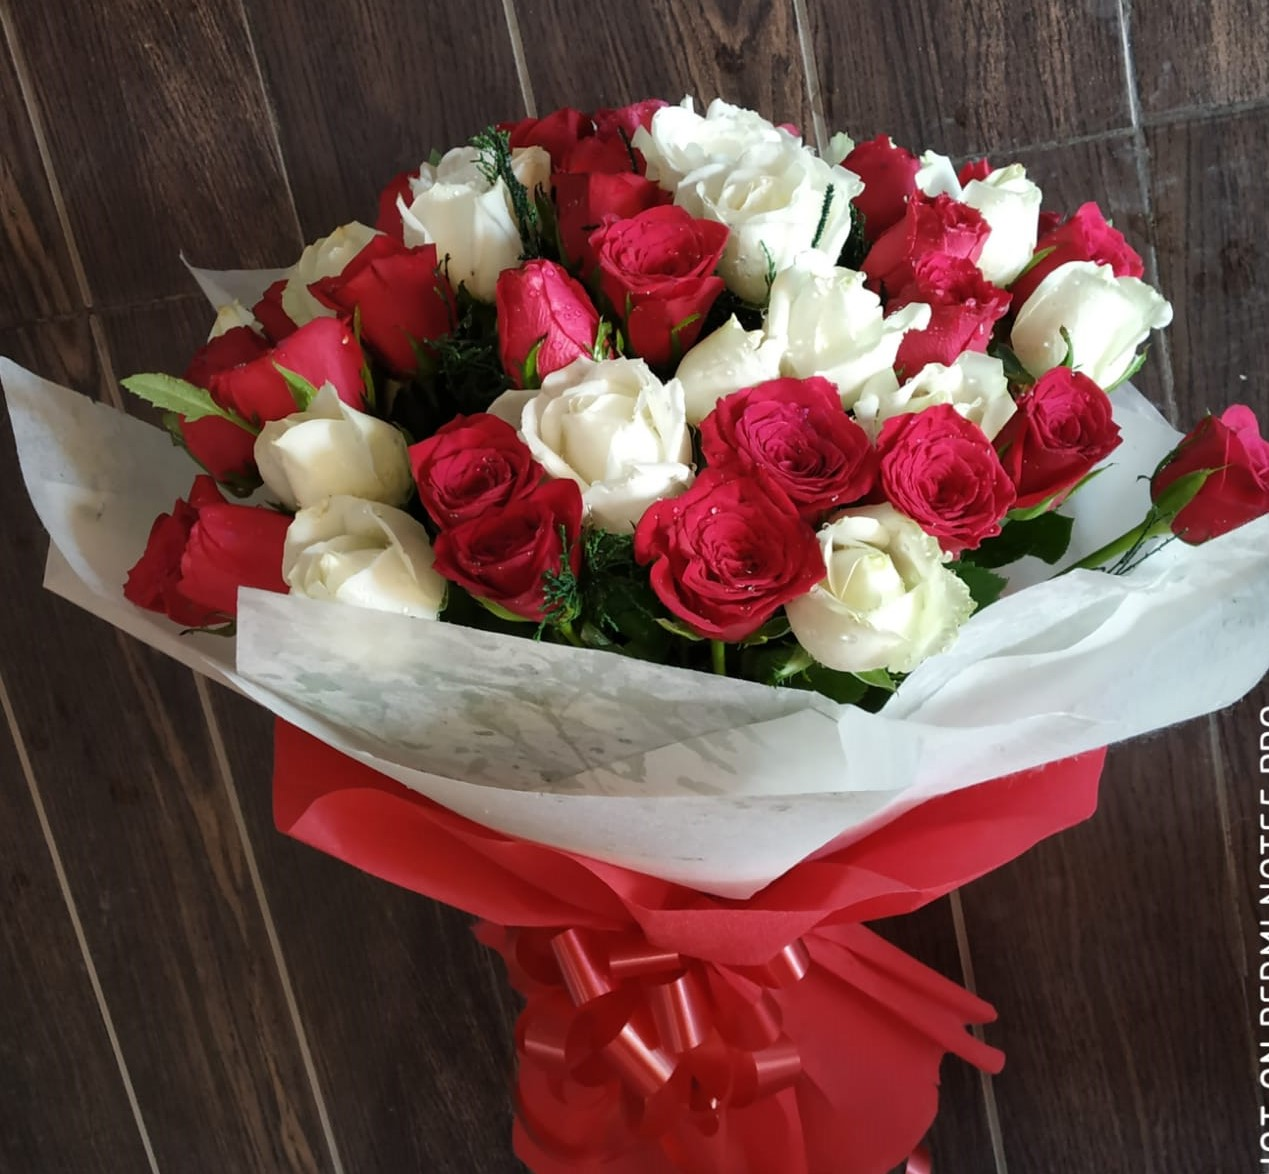 Flowers Delivery in Sector 25 GurgaonRed & White Roses in Duble Layer Packing